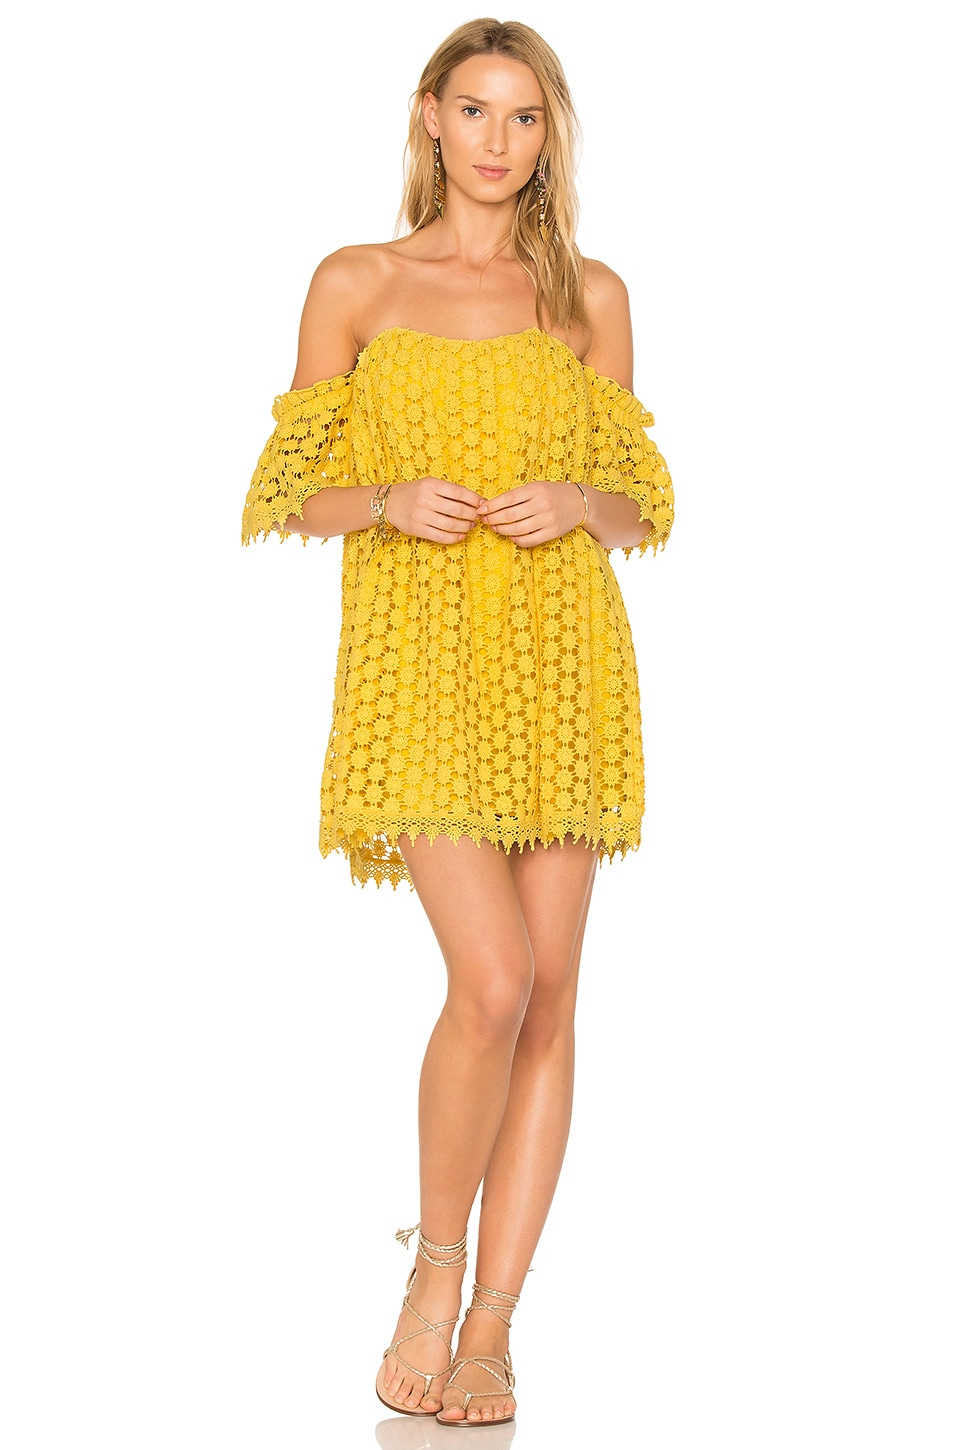 Tularosa x REVOLVE Amelia Dress in Canary Yellow